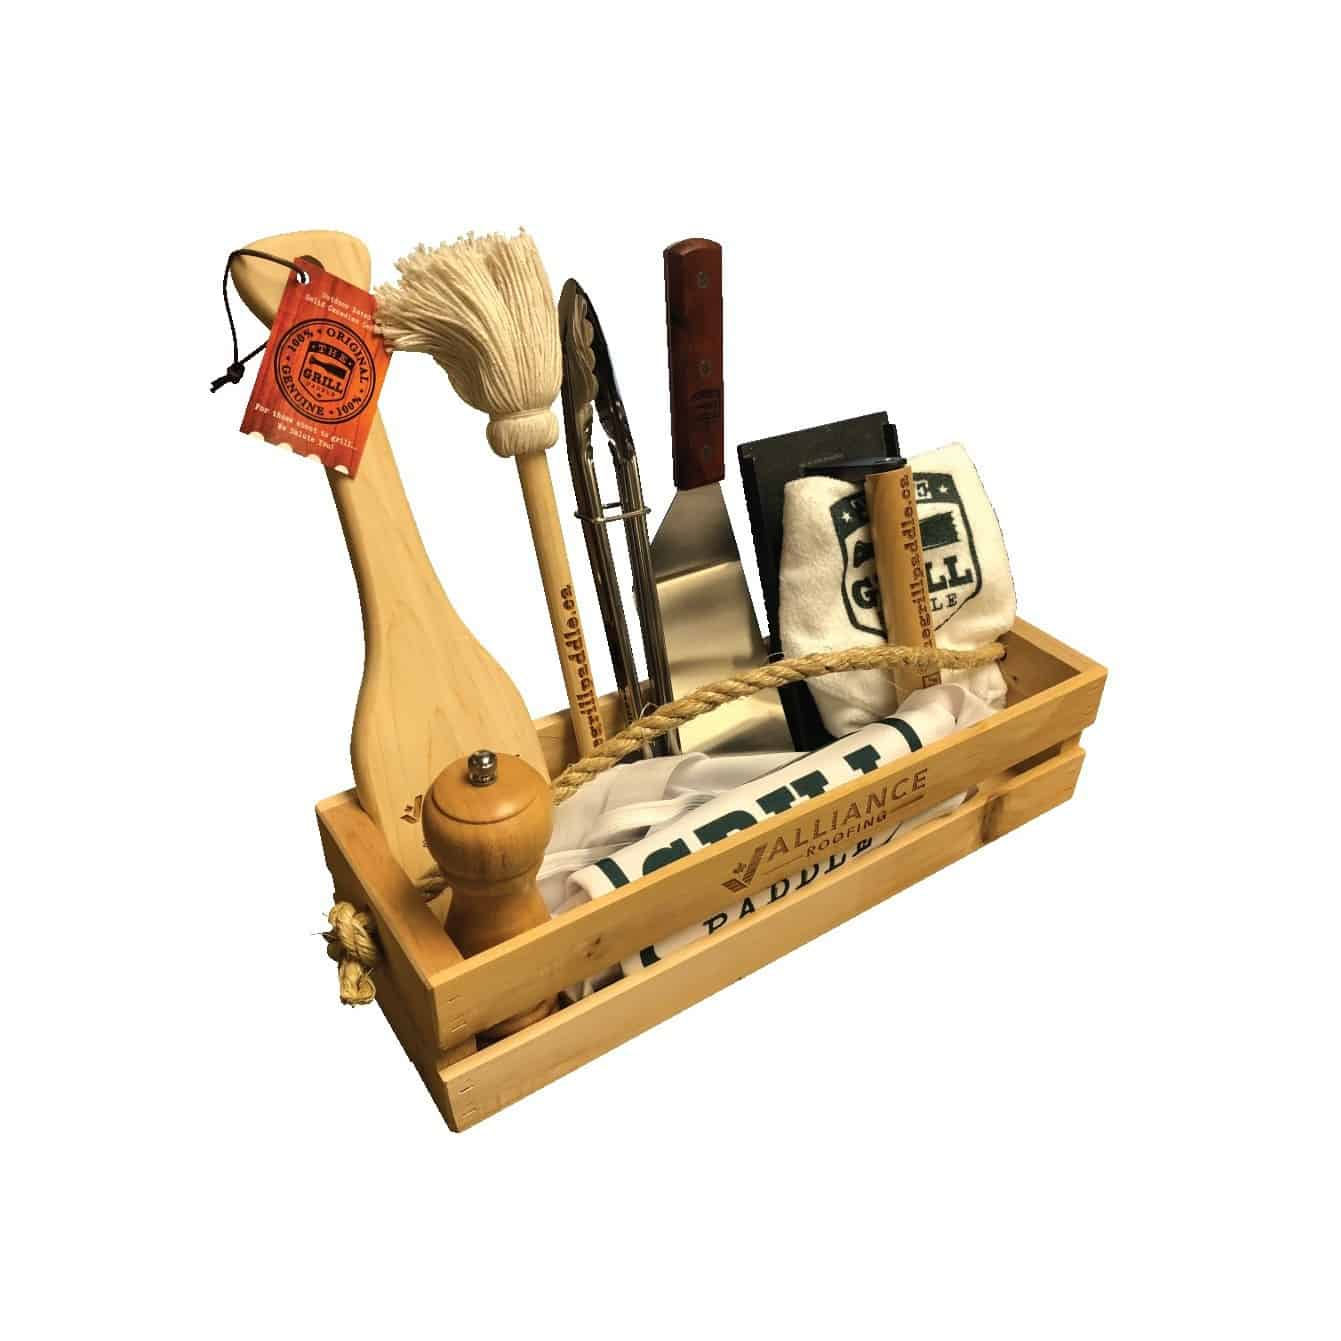 Grill Gear Crate - The Grill Master